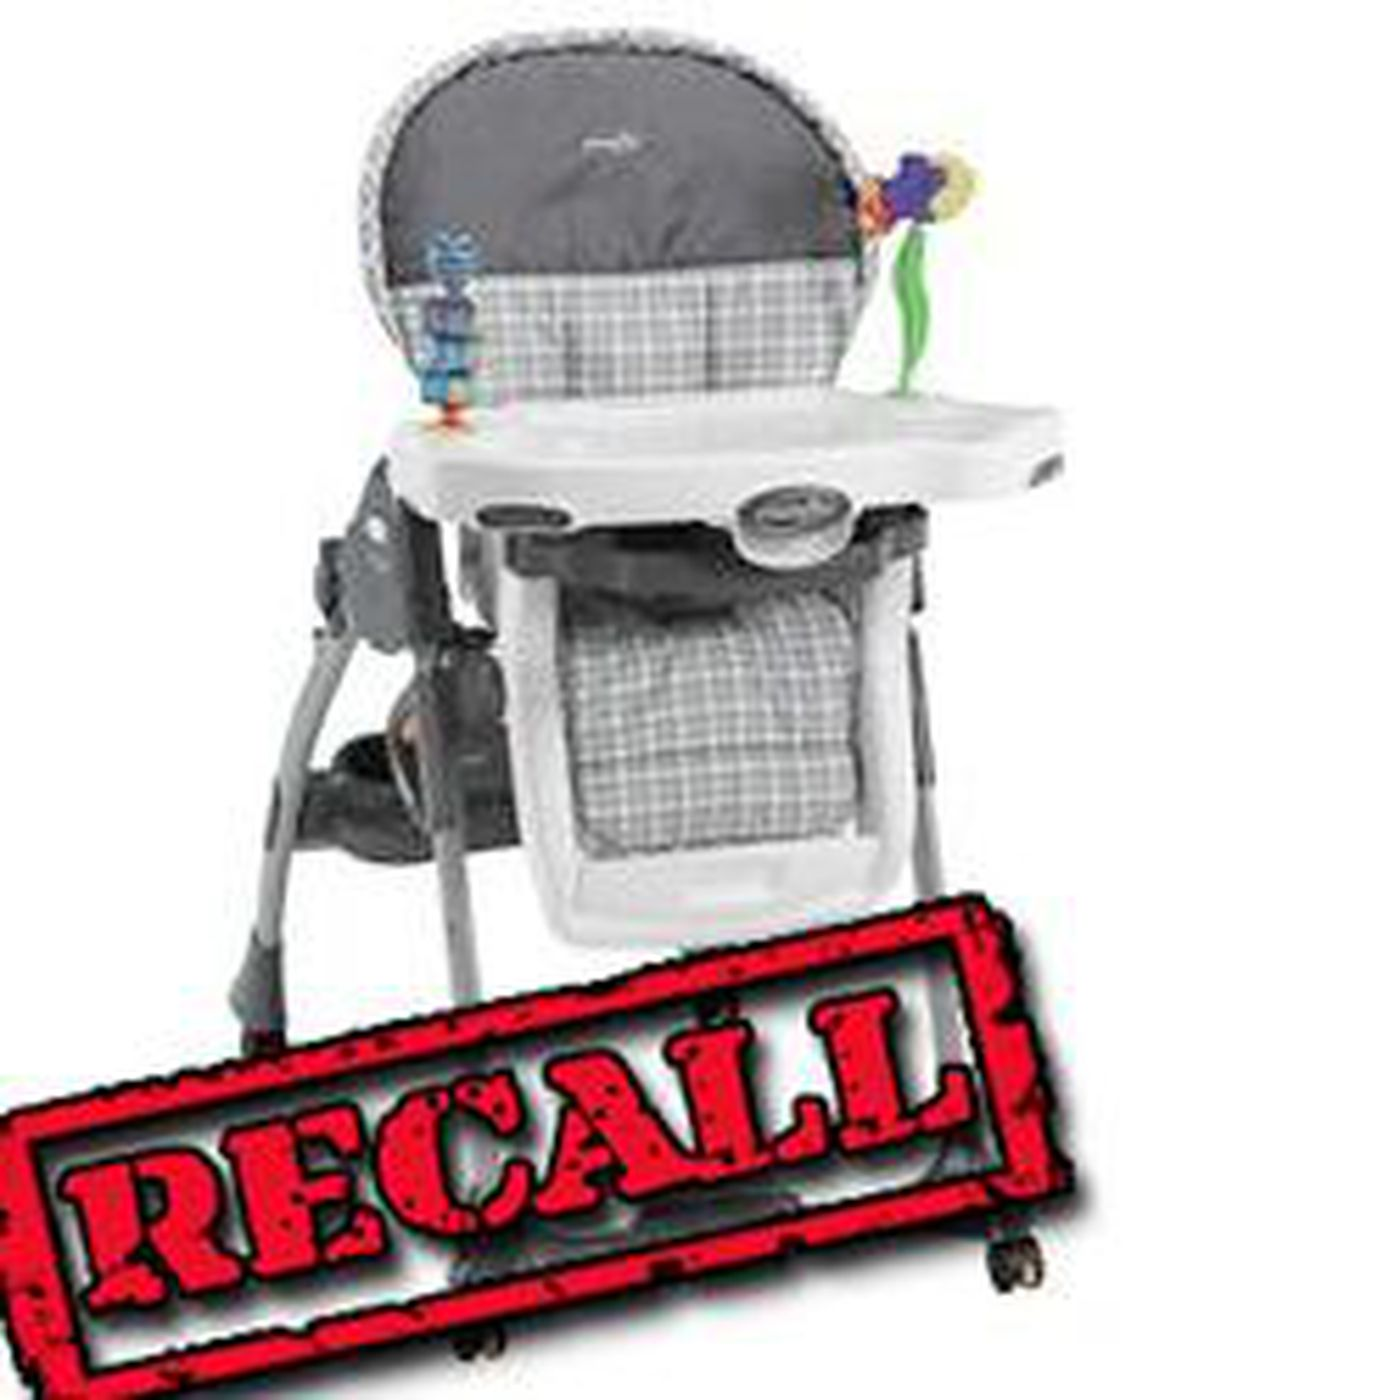 evenflo high chair easy fold recall covers for white folding chairs some majestic from recalled